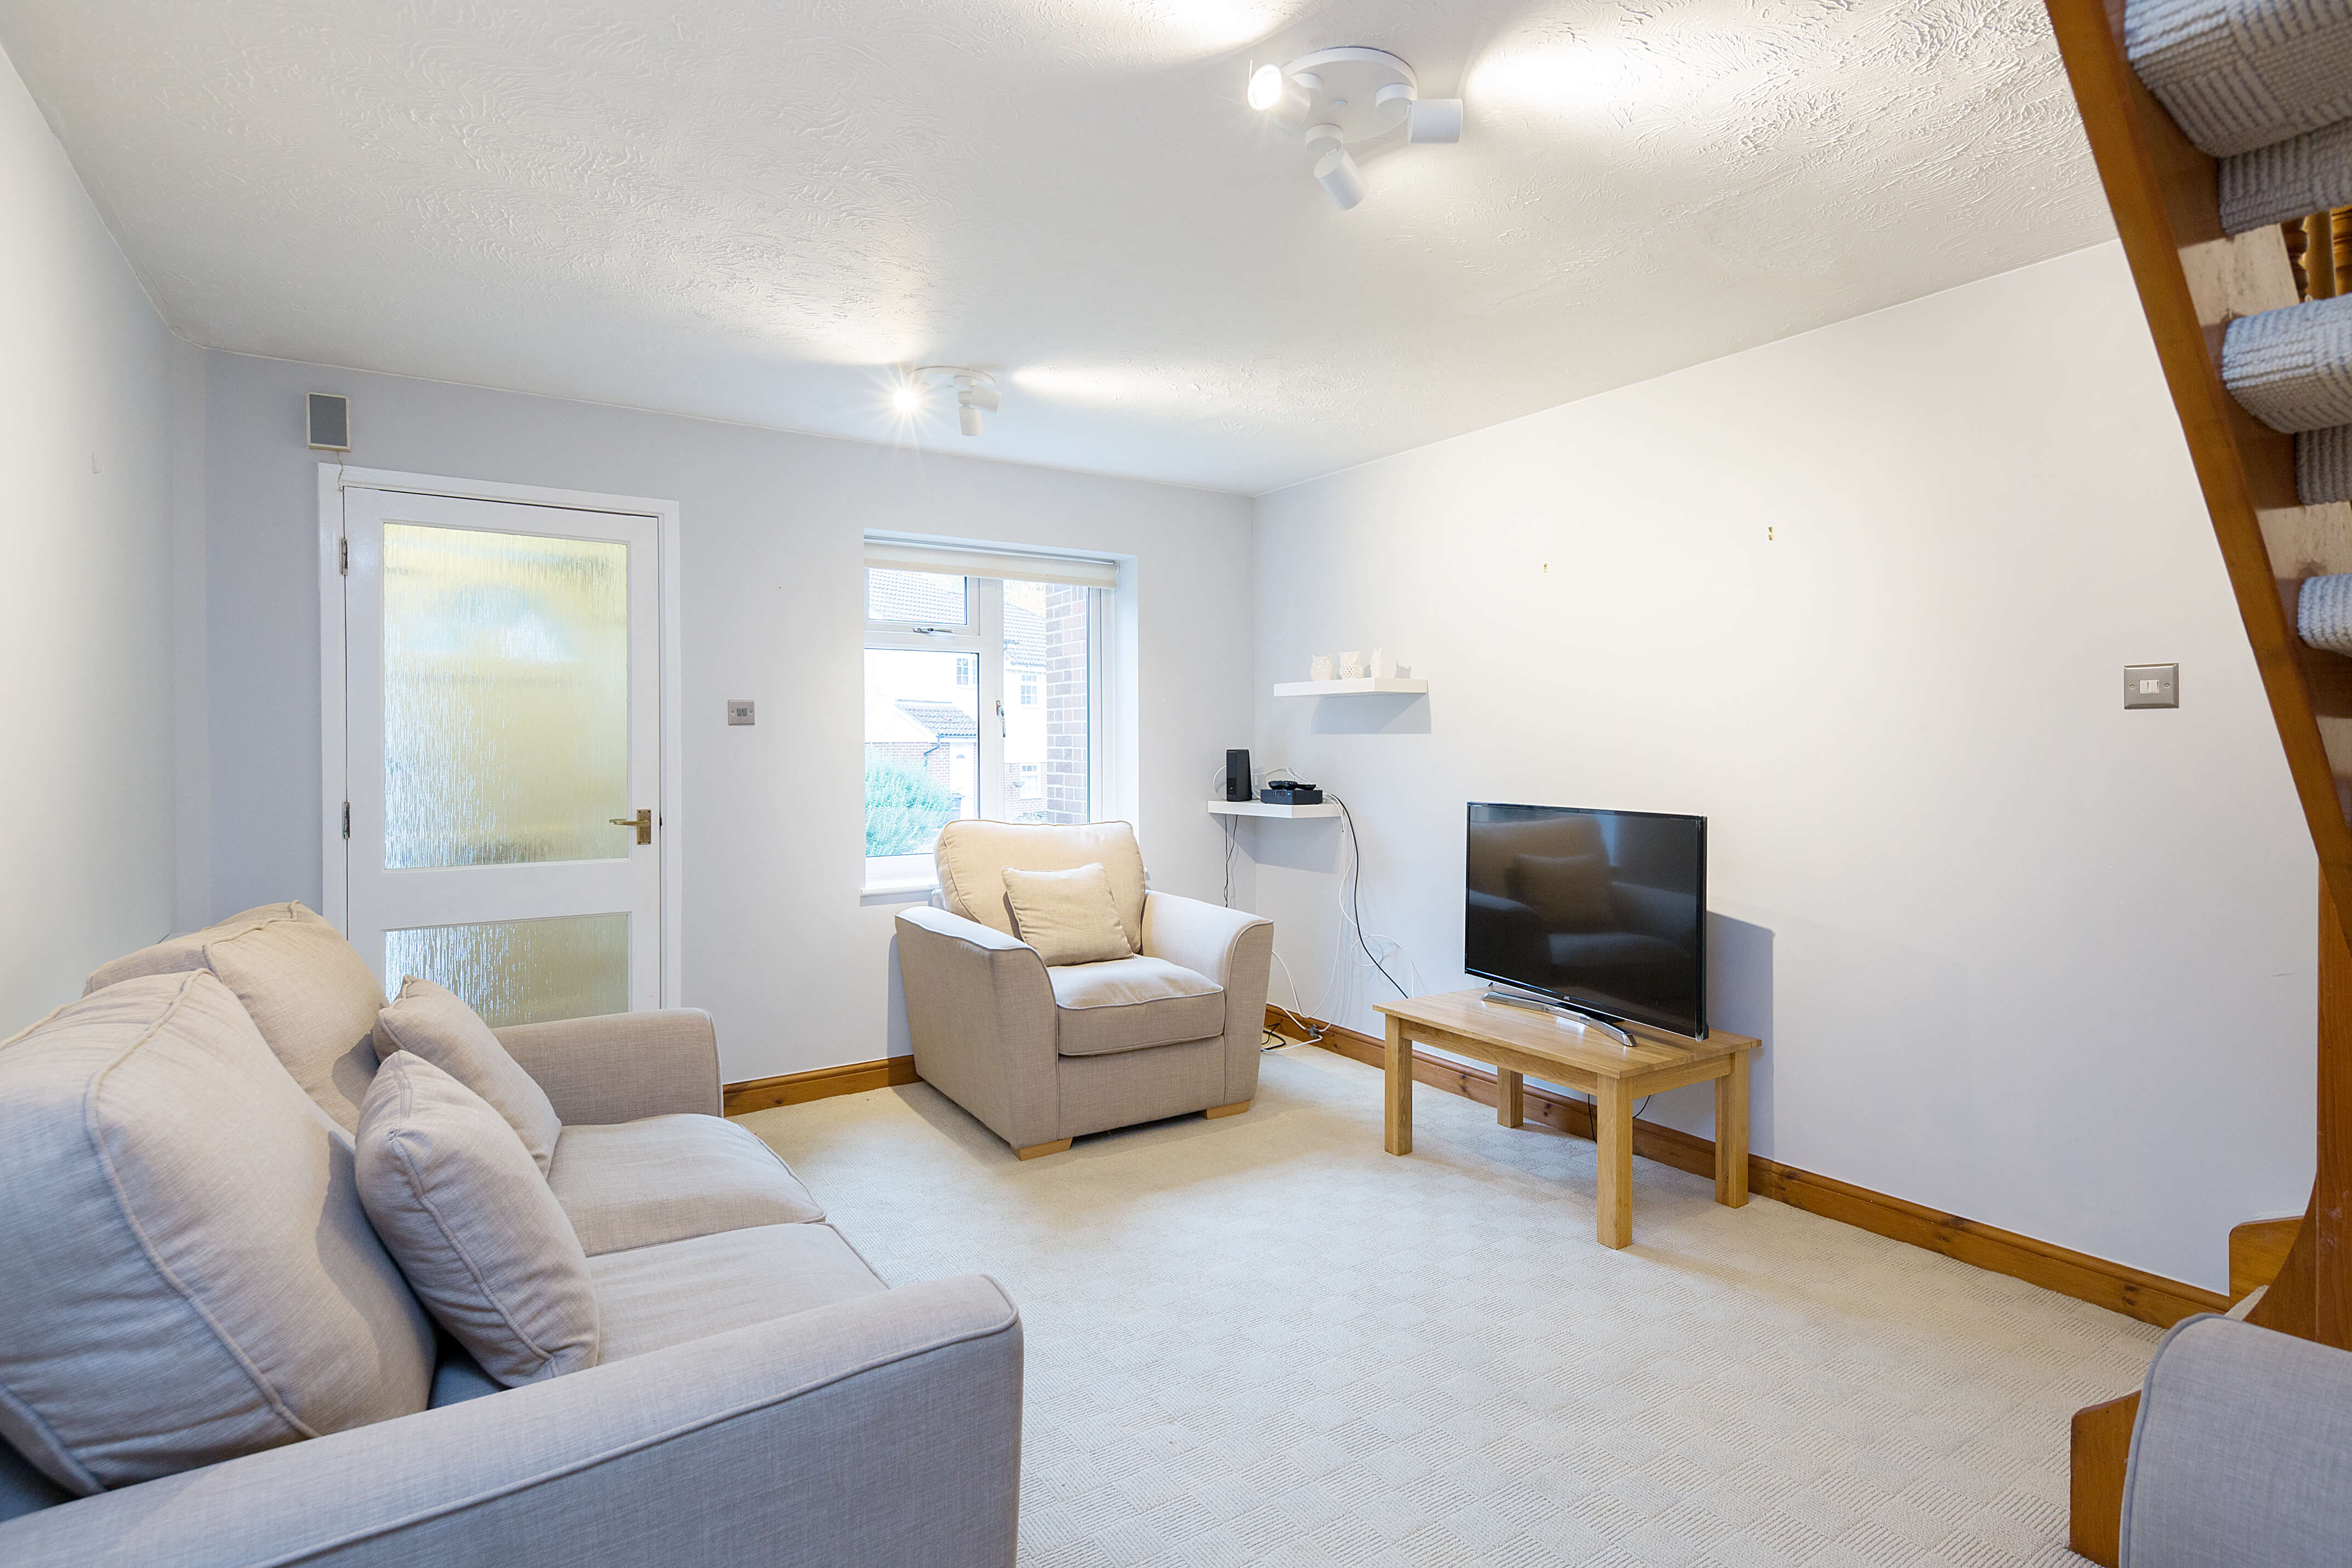 Maidstone-Serviced-Apartments,-UK---The-Valley-HouseI-Book-Short-Let-Apartments-in-Maidenstone-!-Free-Parking-&-Fully-Equipped-Kitchen-I-Available-Now!